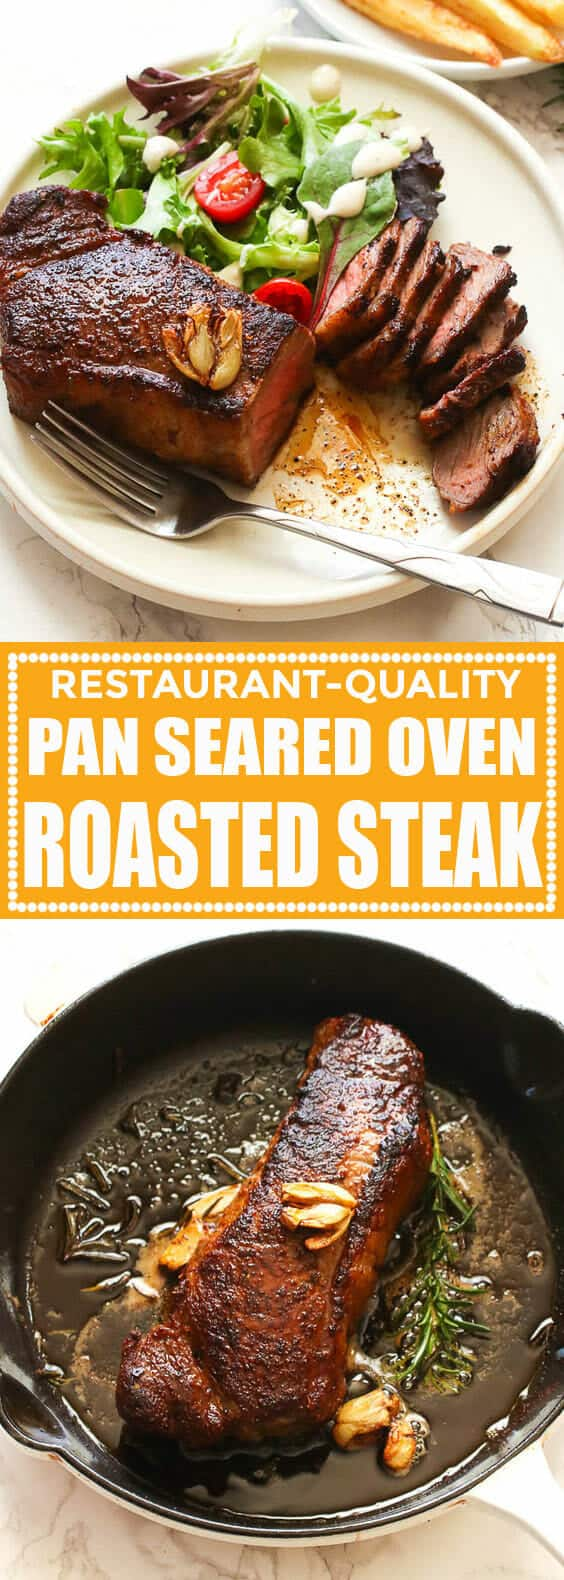 Pan Seared Oven Roasted Steak